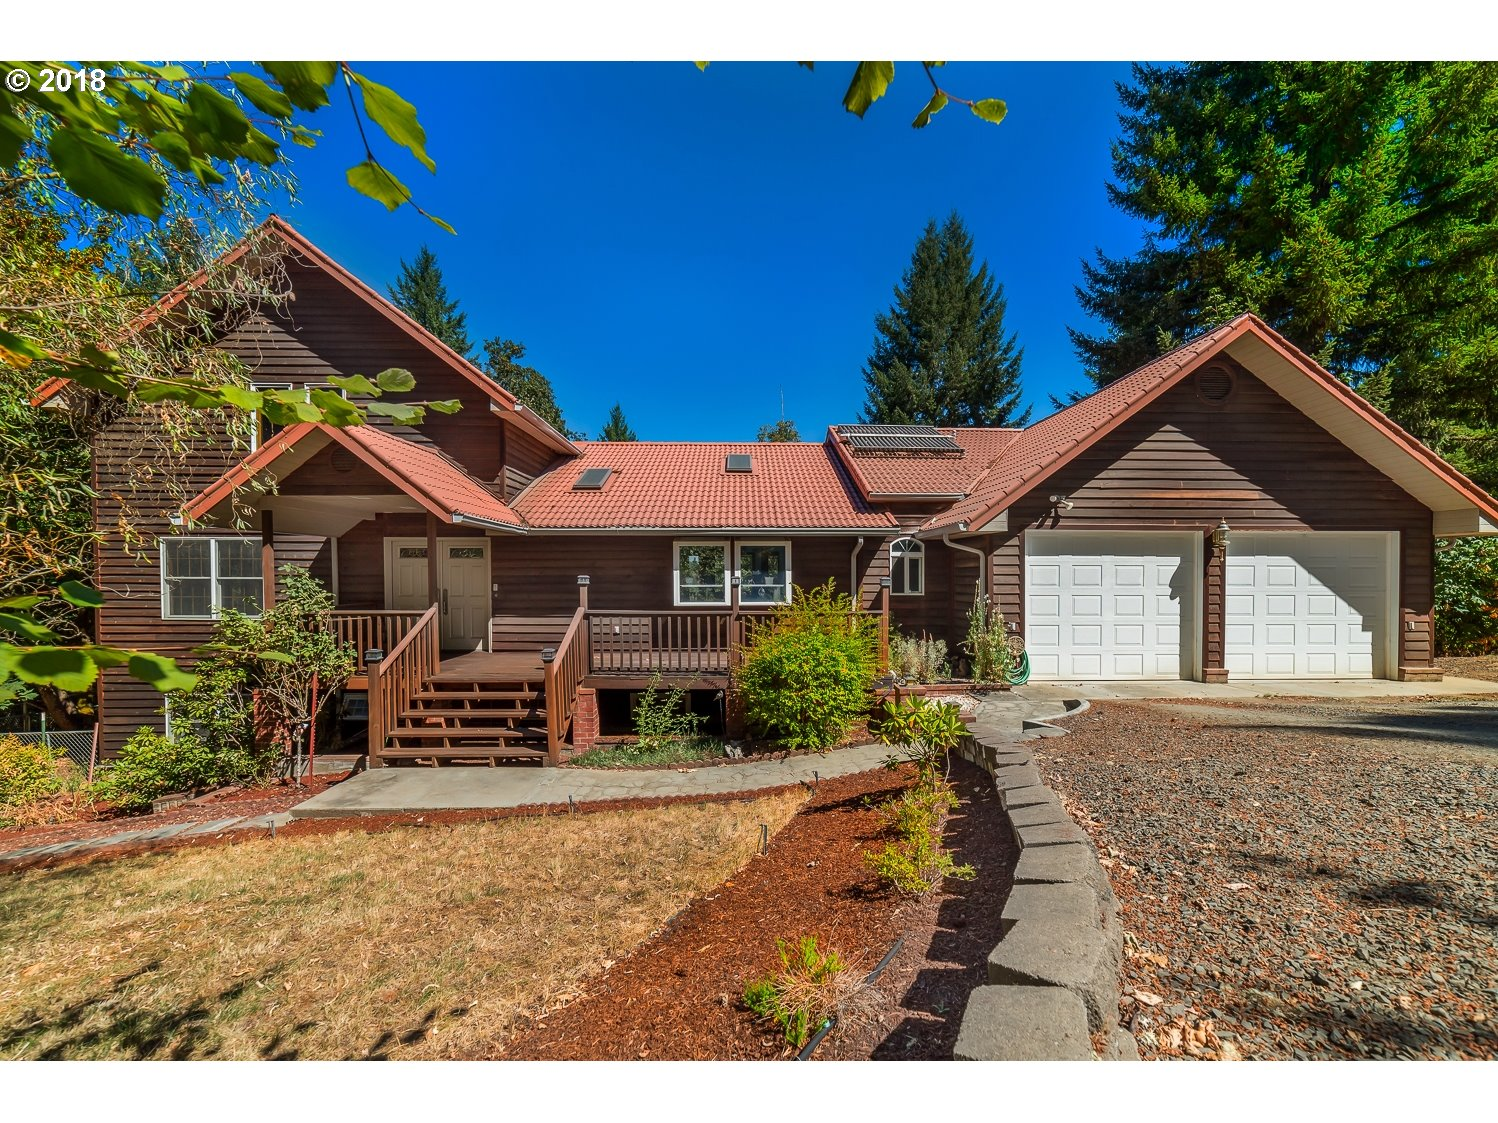 Eugene 4 Bedroom Home For Sale